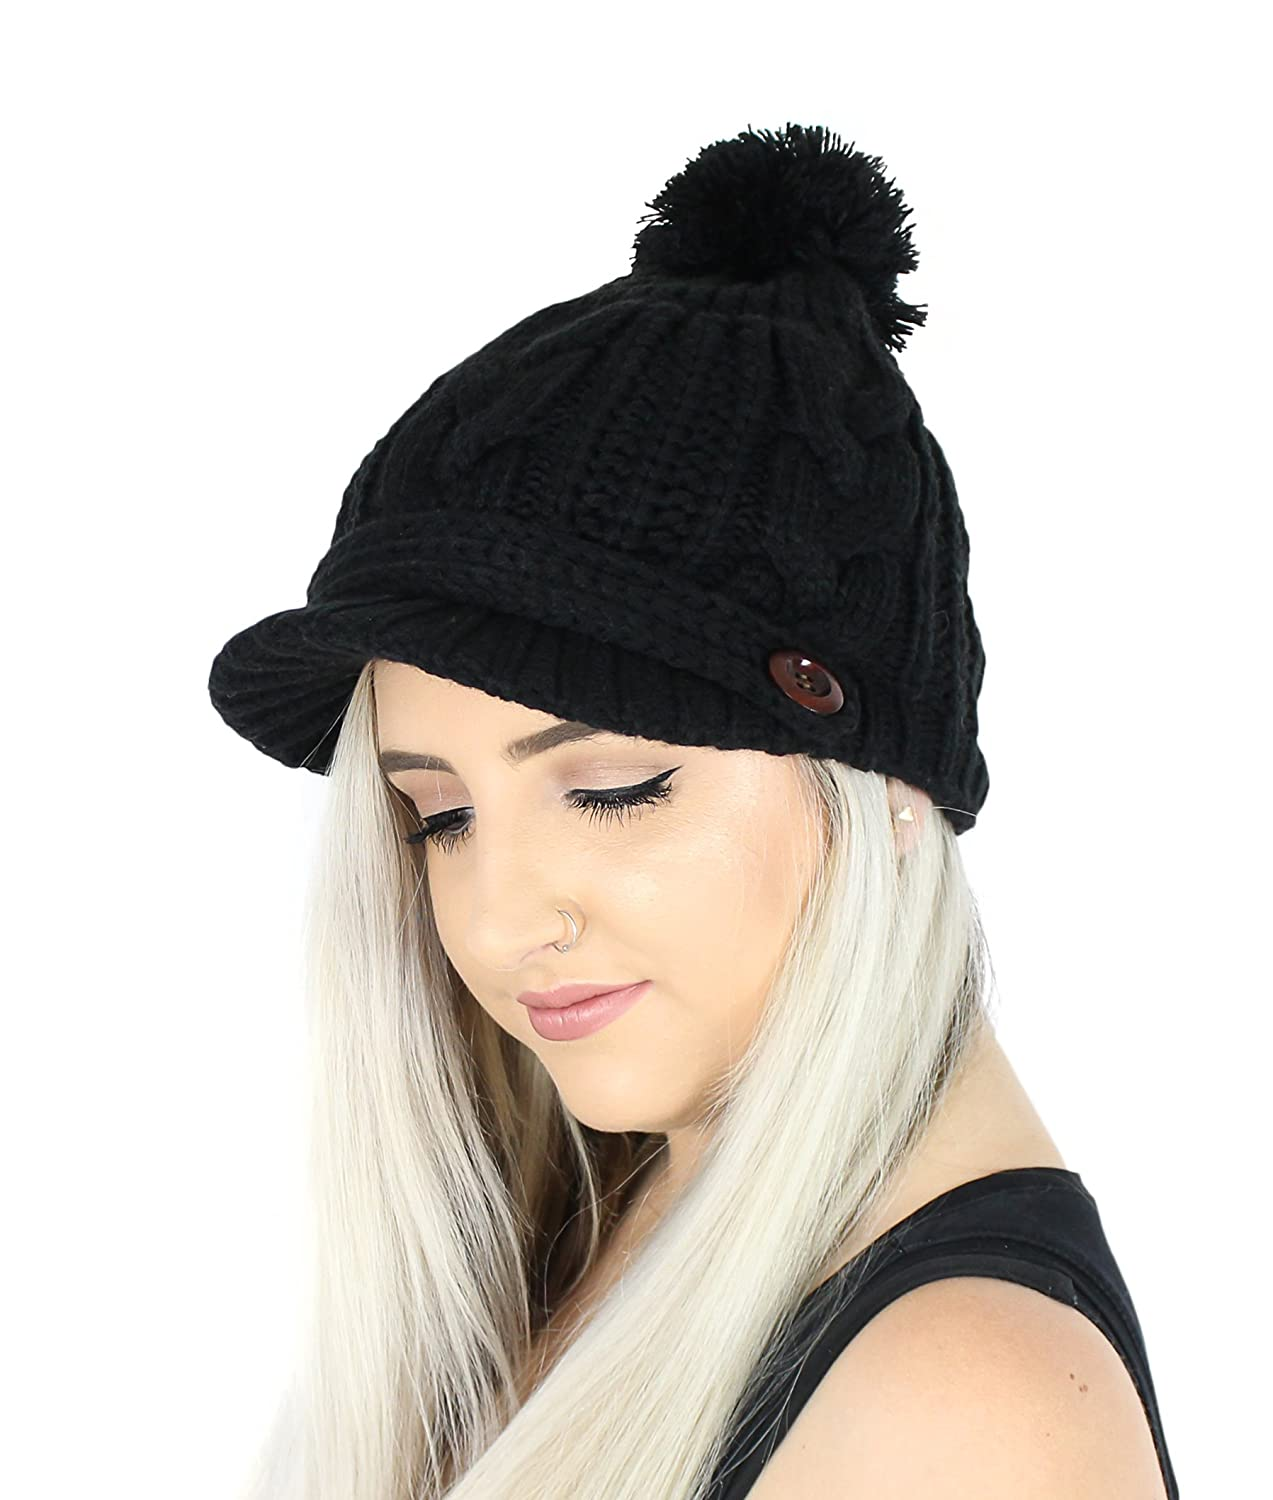 330f914f4a69e7 Black PomPom Cable Ribbed Knit Beanie Hat w/ Visor Brim - Winter Skully Cap  at Amazon Women's Clothing store: